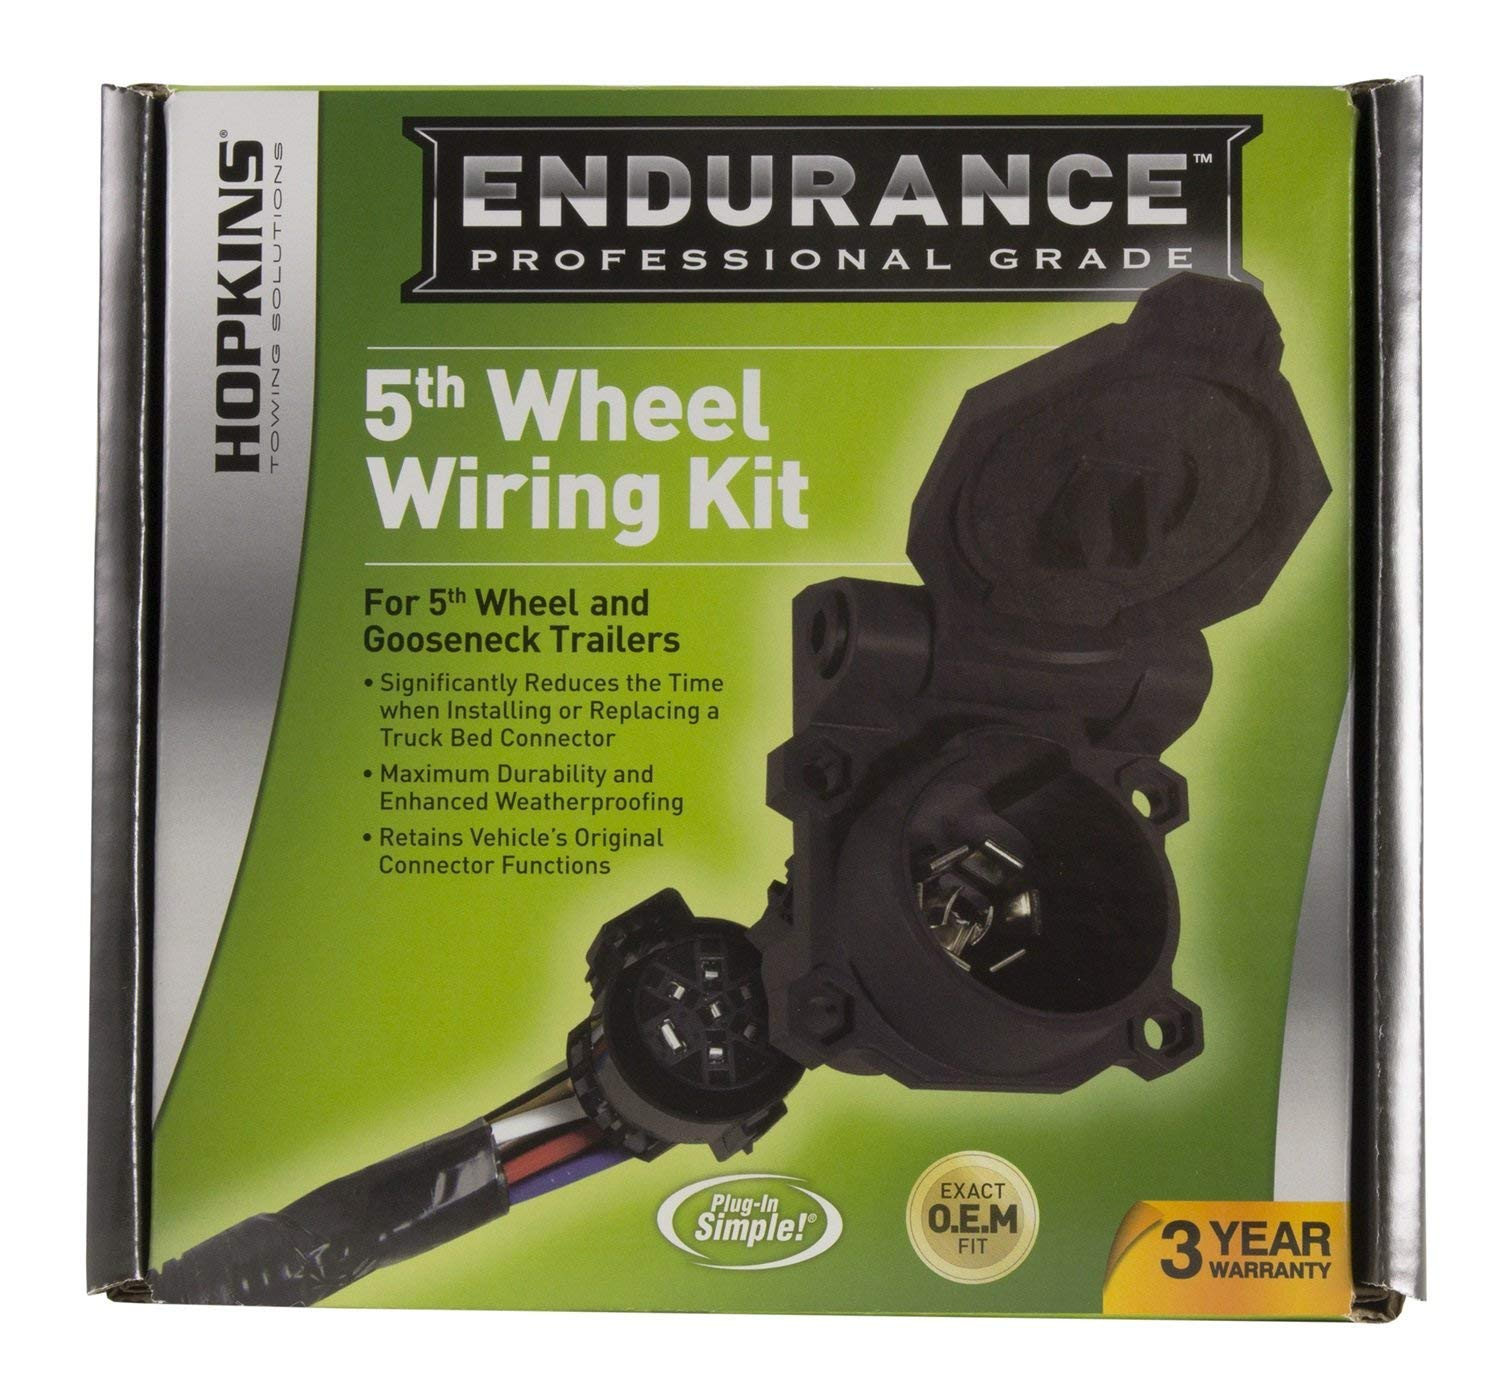 Hopkins 41157 Endurance 5th Wheel Wiring Kit on